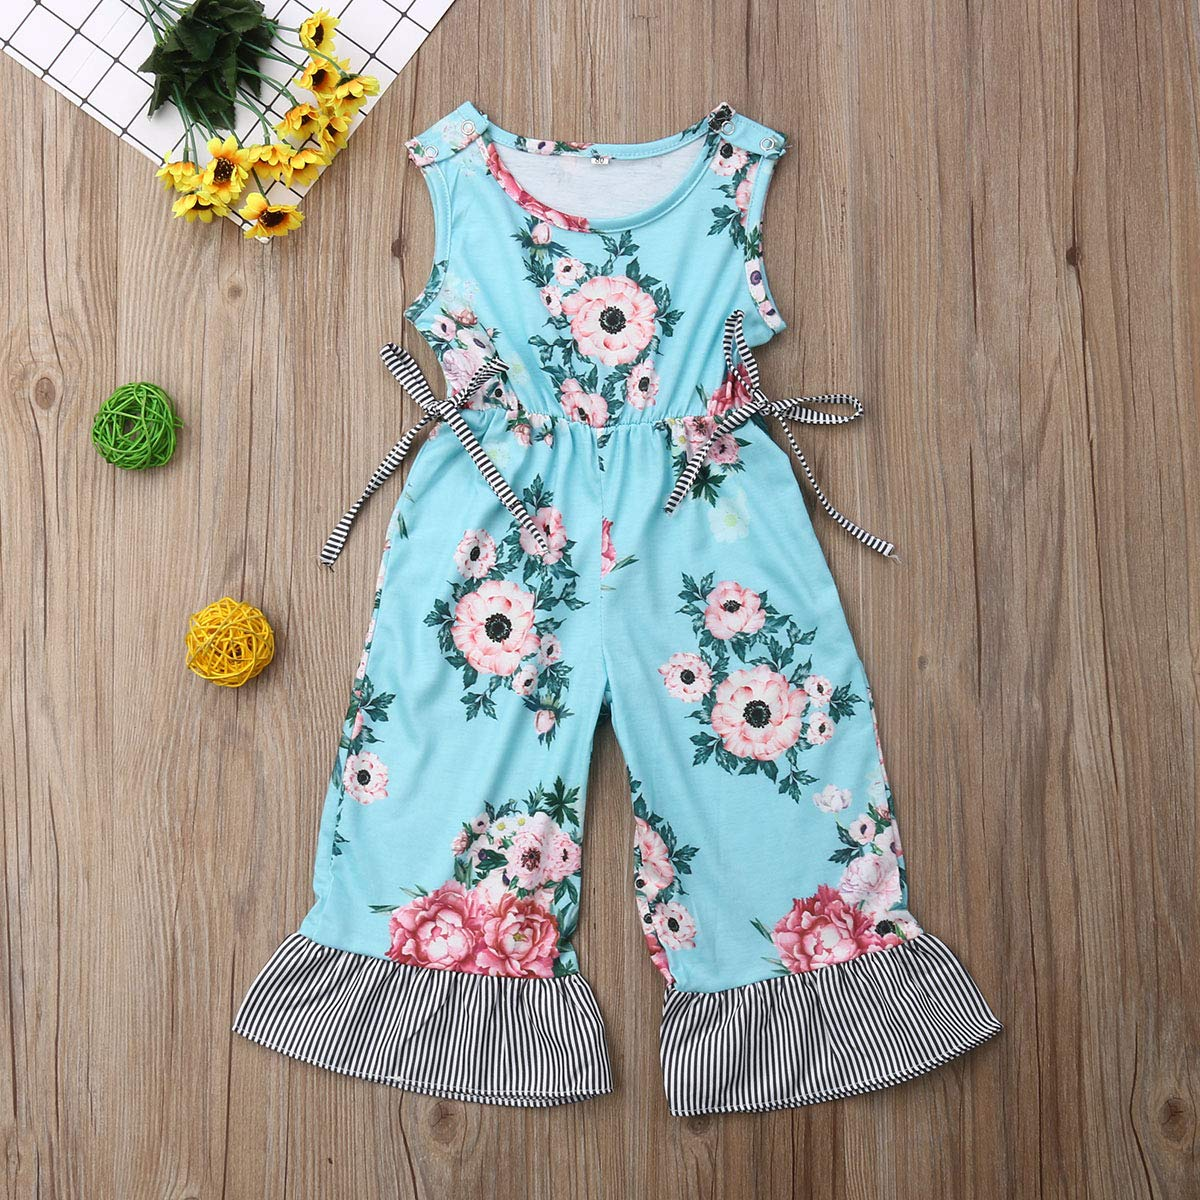 Toddler Baby Girls Floral Overalls Jumpsuit Bell-Bottom Pants One-Piece Summer Clothes Outfits